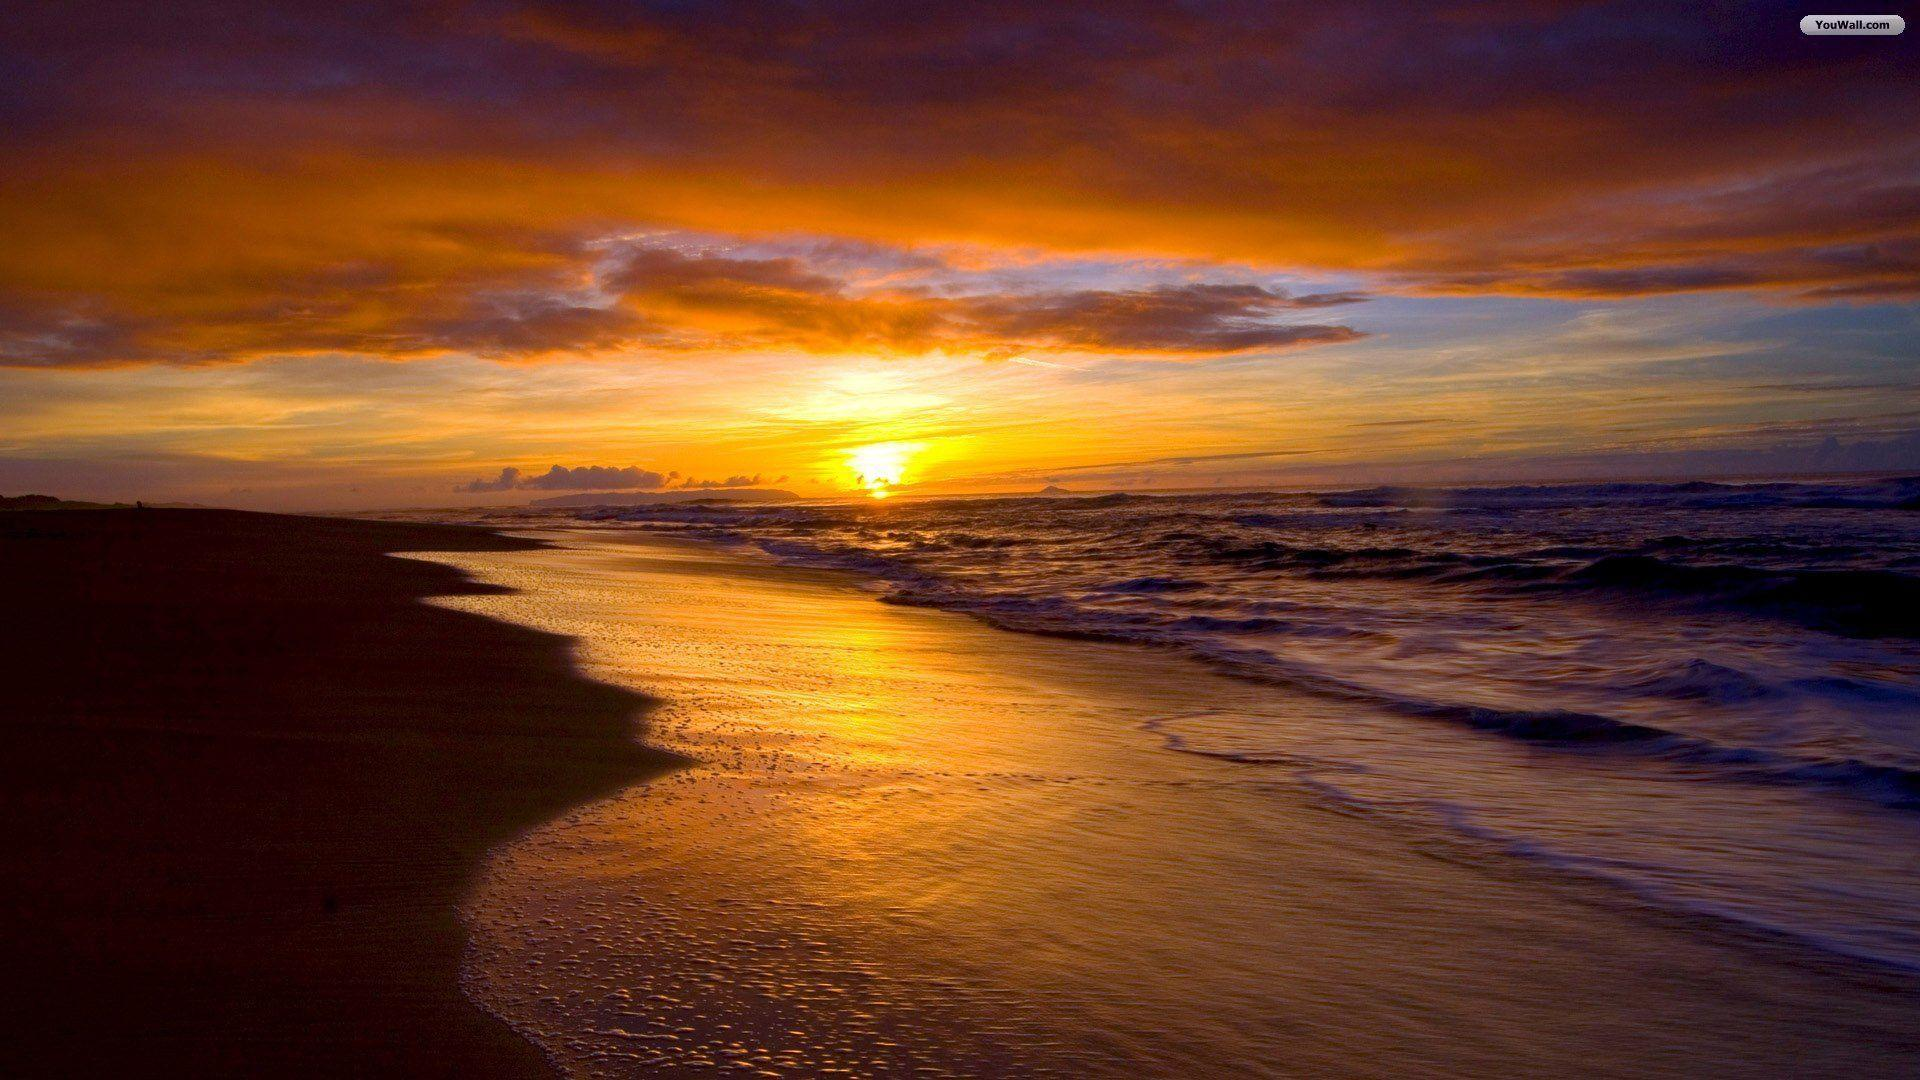 sunset beaches wallpapers - wallpaper cave